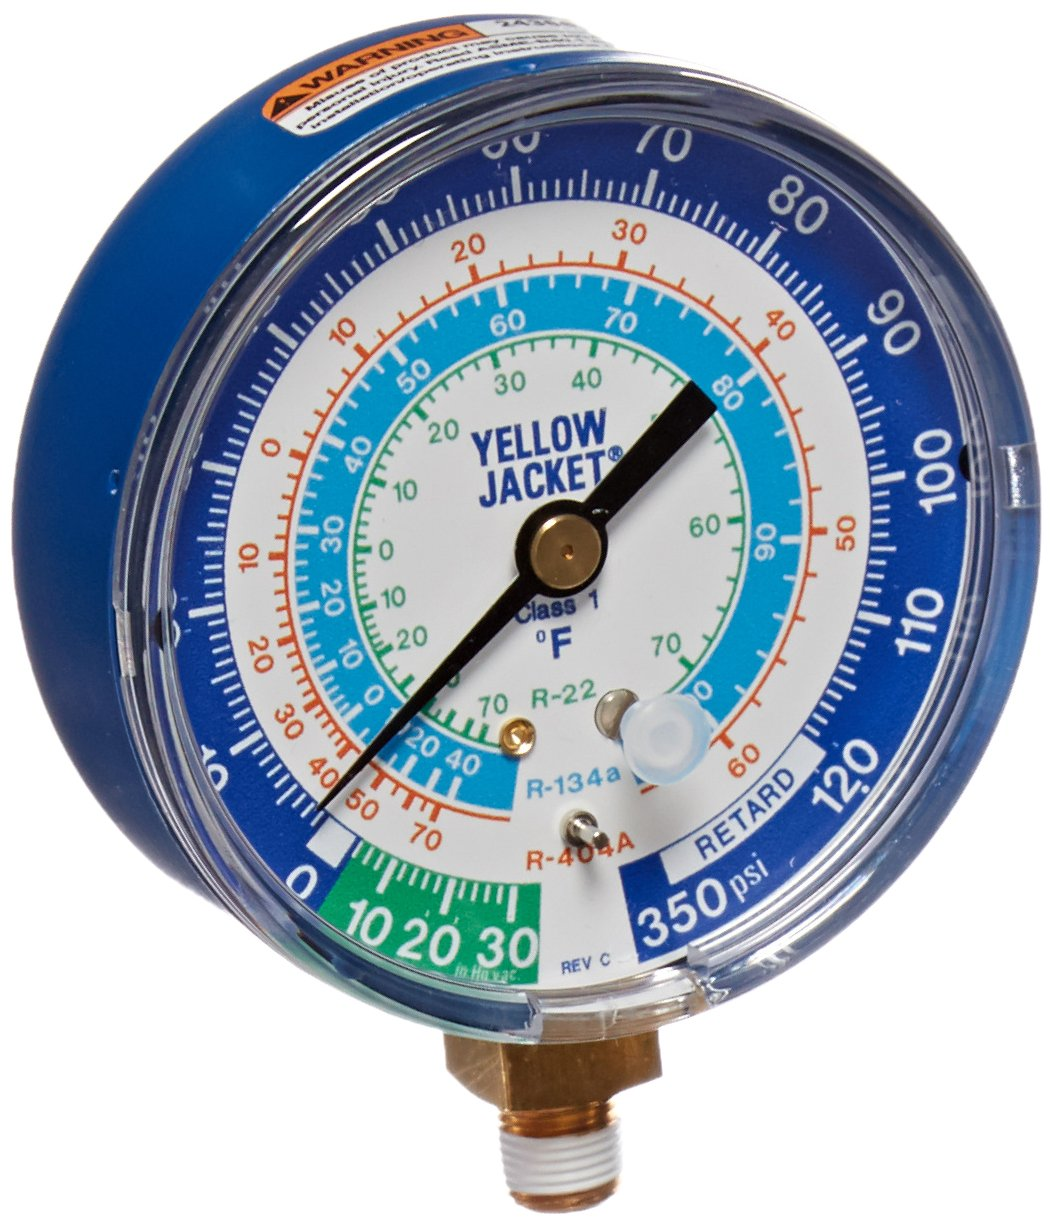 Yellow Jacket 49106 Gauge (degrees F) Blue Compound, 30'-0-120 psi, R-22/134A/404A, 3-1/8' 30-0-120 psi 3-1/8 Fotronic Corporation